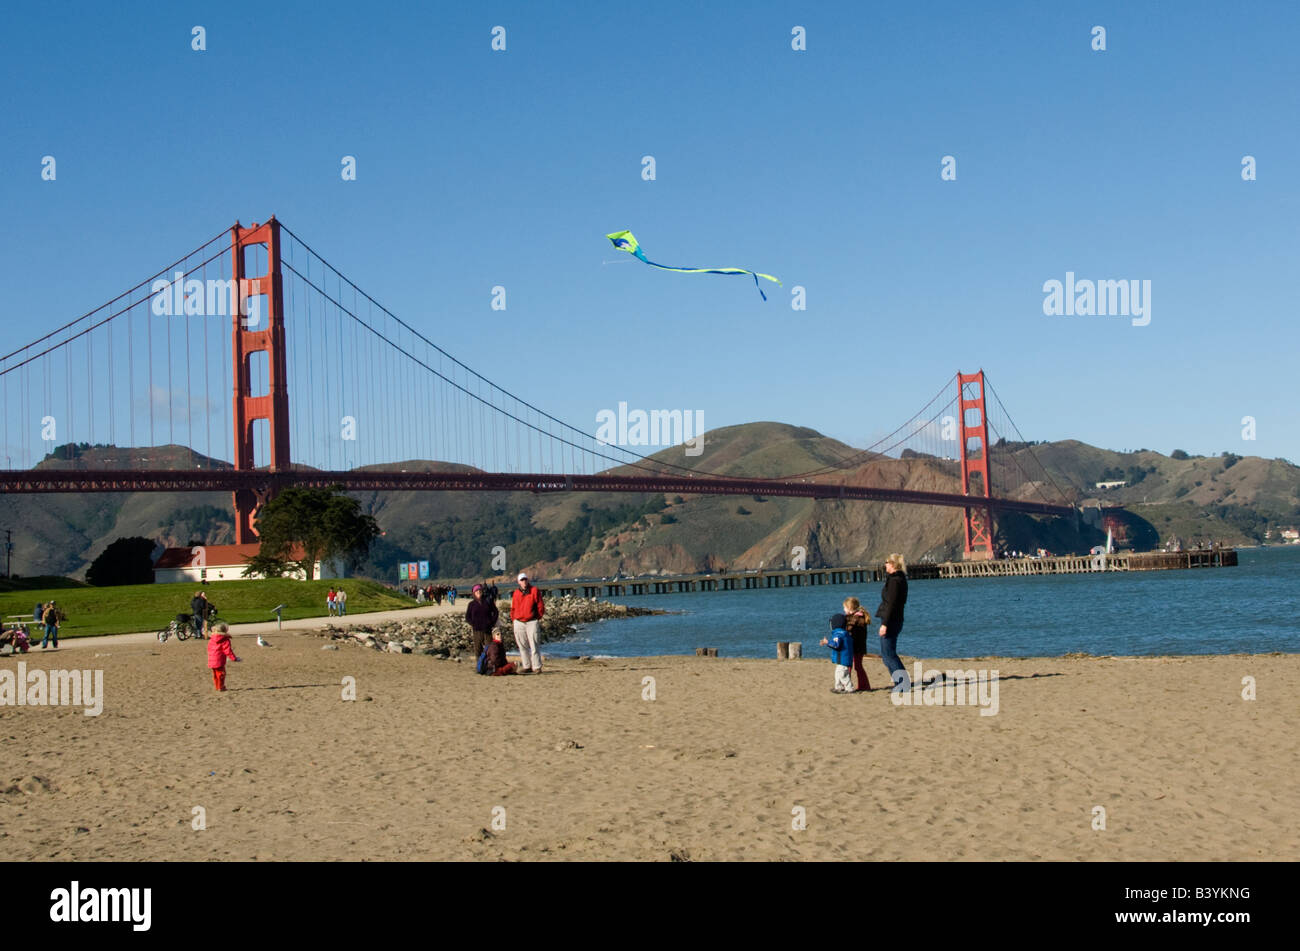 A family flies a kite at Crissy Field near the Golden Gate Bridge in San Francisco CA California - Stock Image